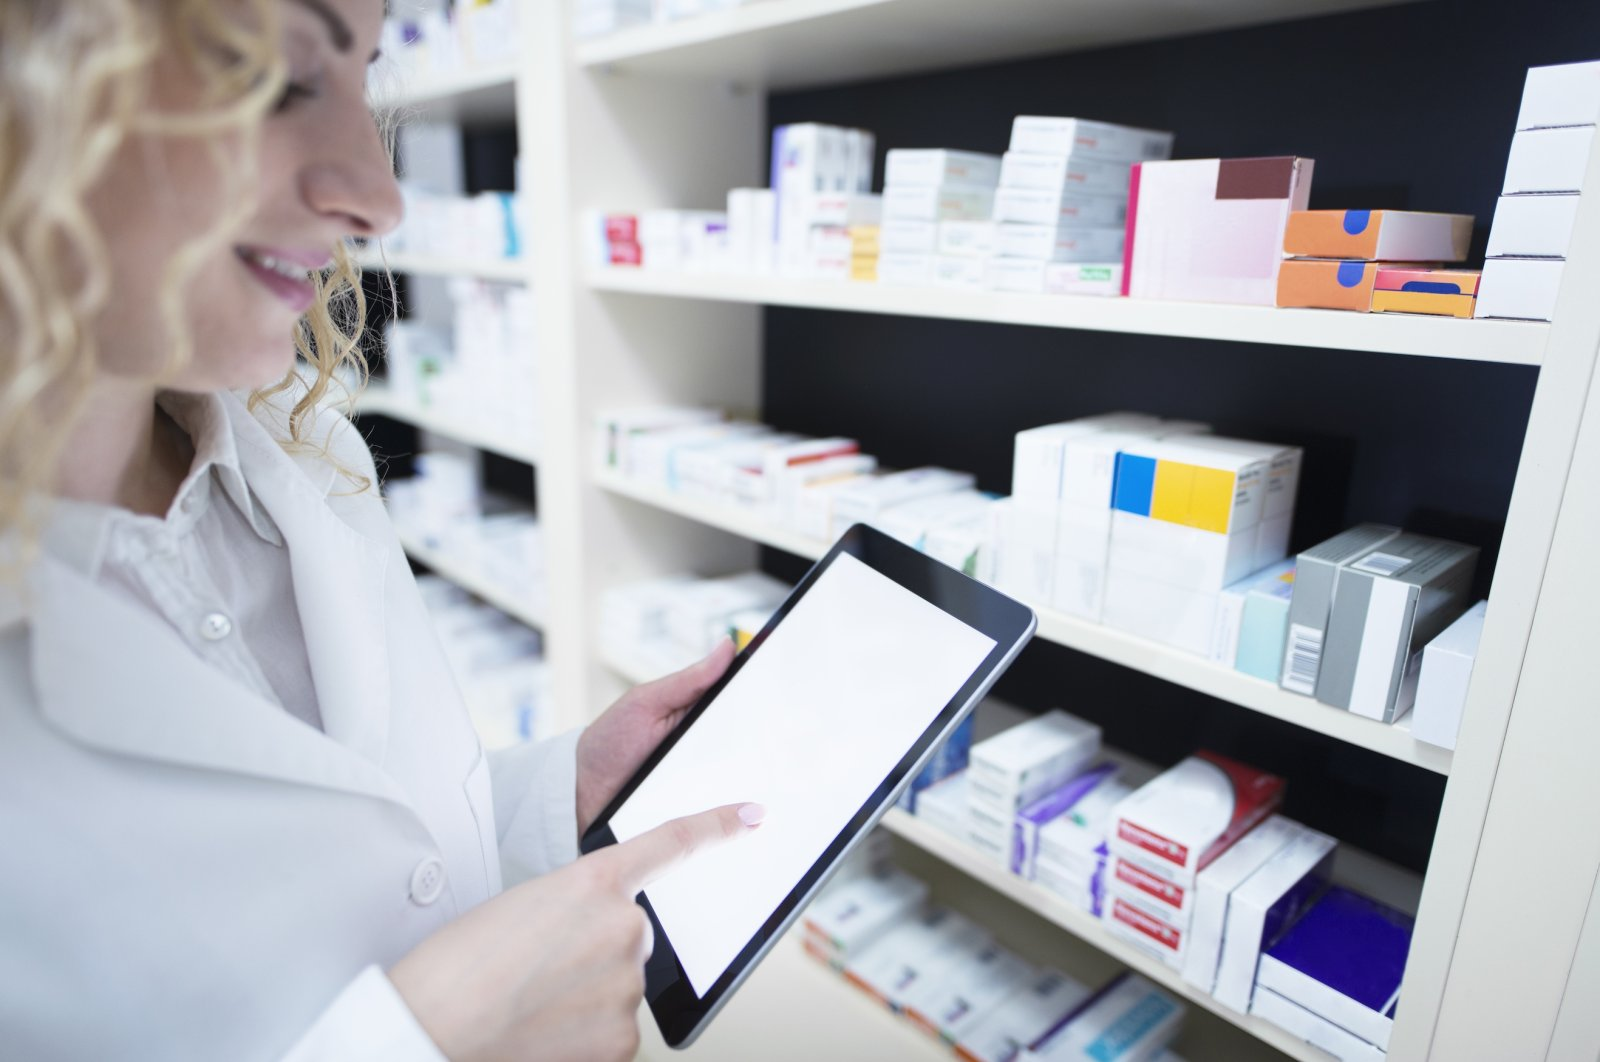 Novadan plaftorm enables pharmacies to have a clearing system that reduces medical waste. (iStock Photo)